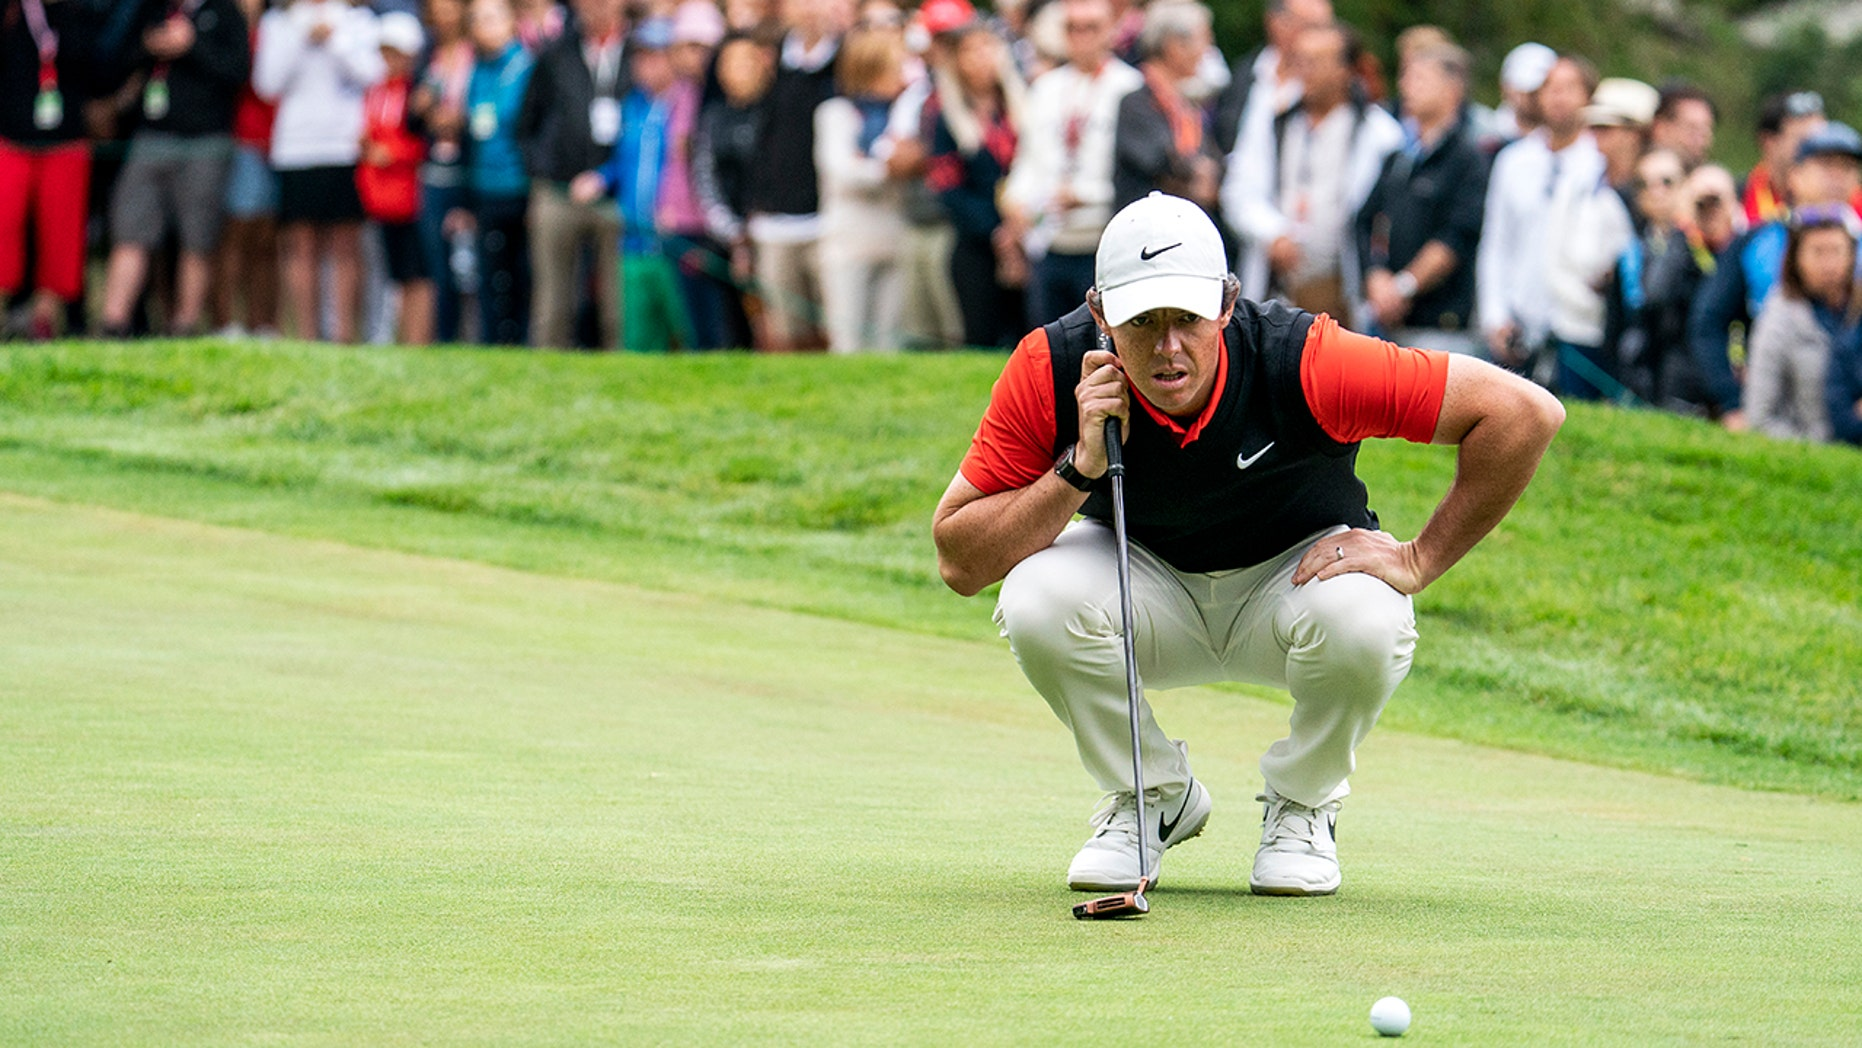 Rory McIlroy of Northern Ireland lines up a putt during the final round the final round of the European Masters golf tournament in Crans-Montana, Switzerland, Sunday, September 1, 2019. (Alexandra Wey/Keystone via AP)